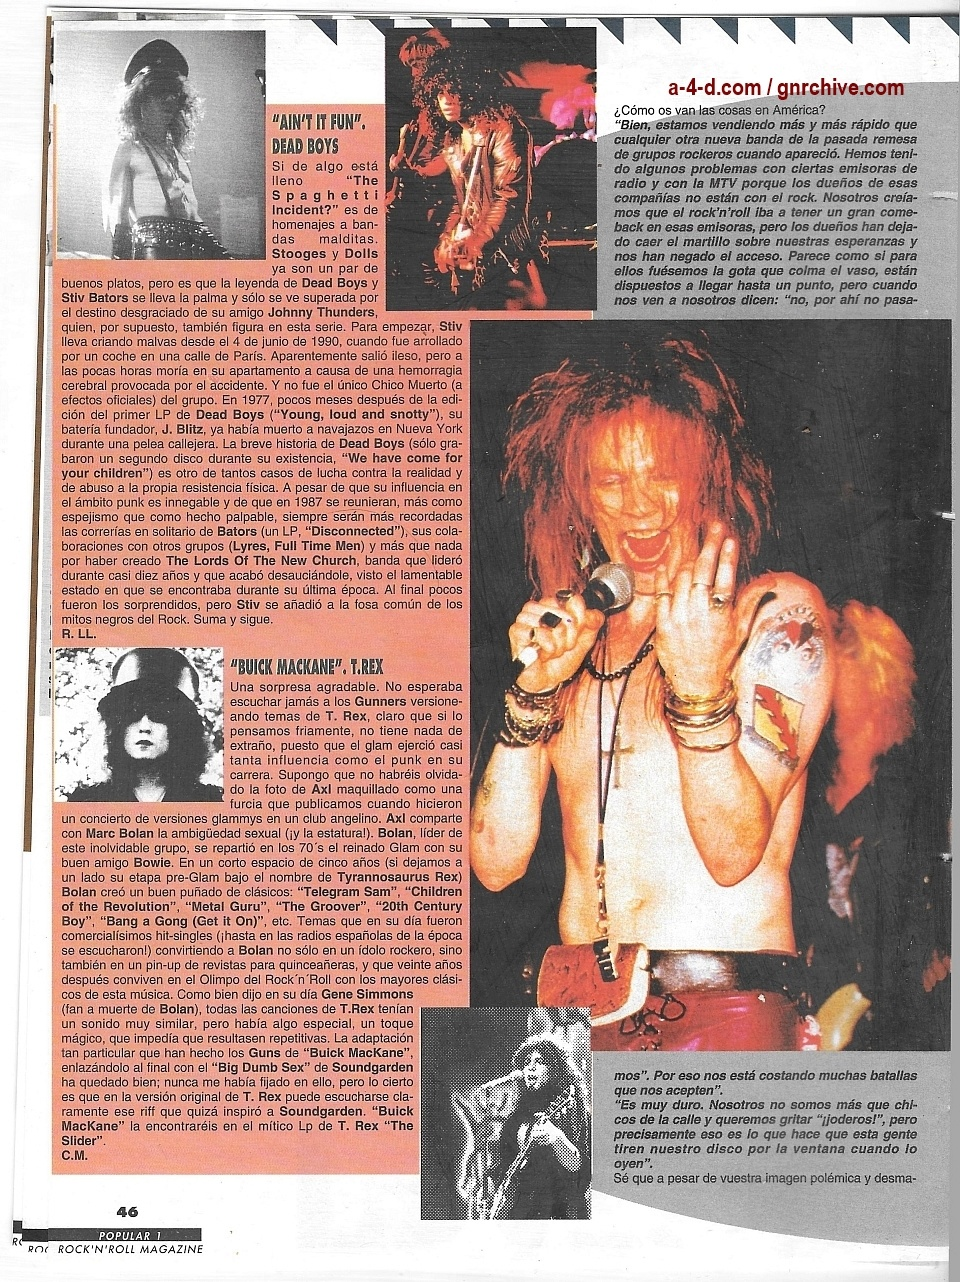 1994.01.DD - Popular 1 - Guns N' Roses Pay Tribute To Their Heroes (Duff) 1993_162